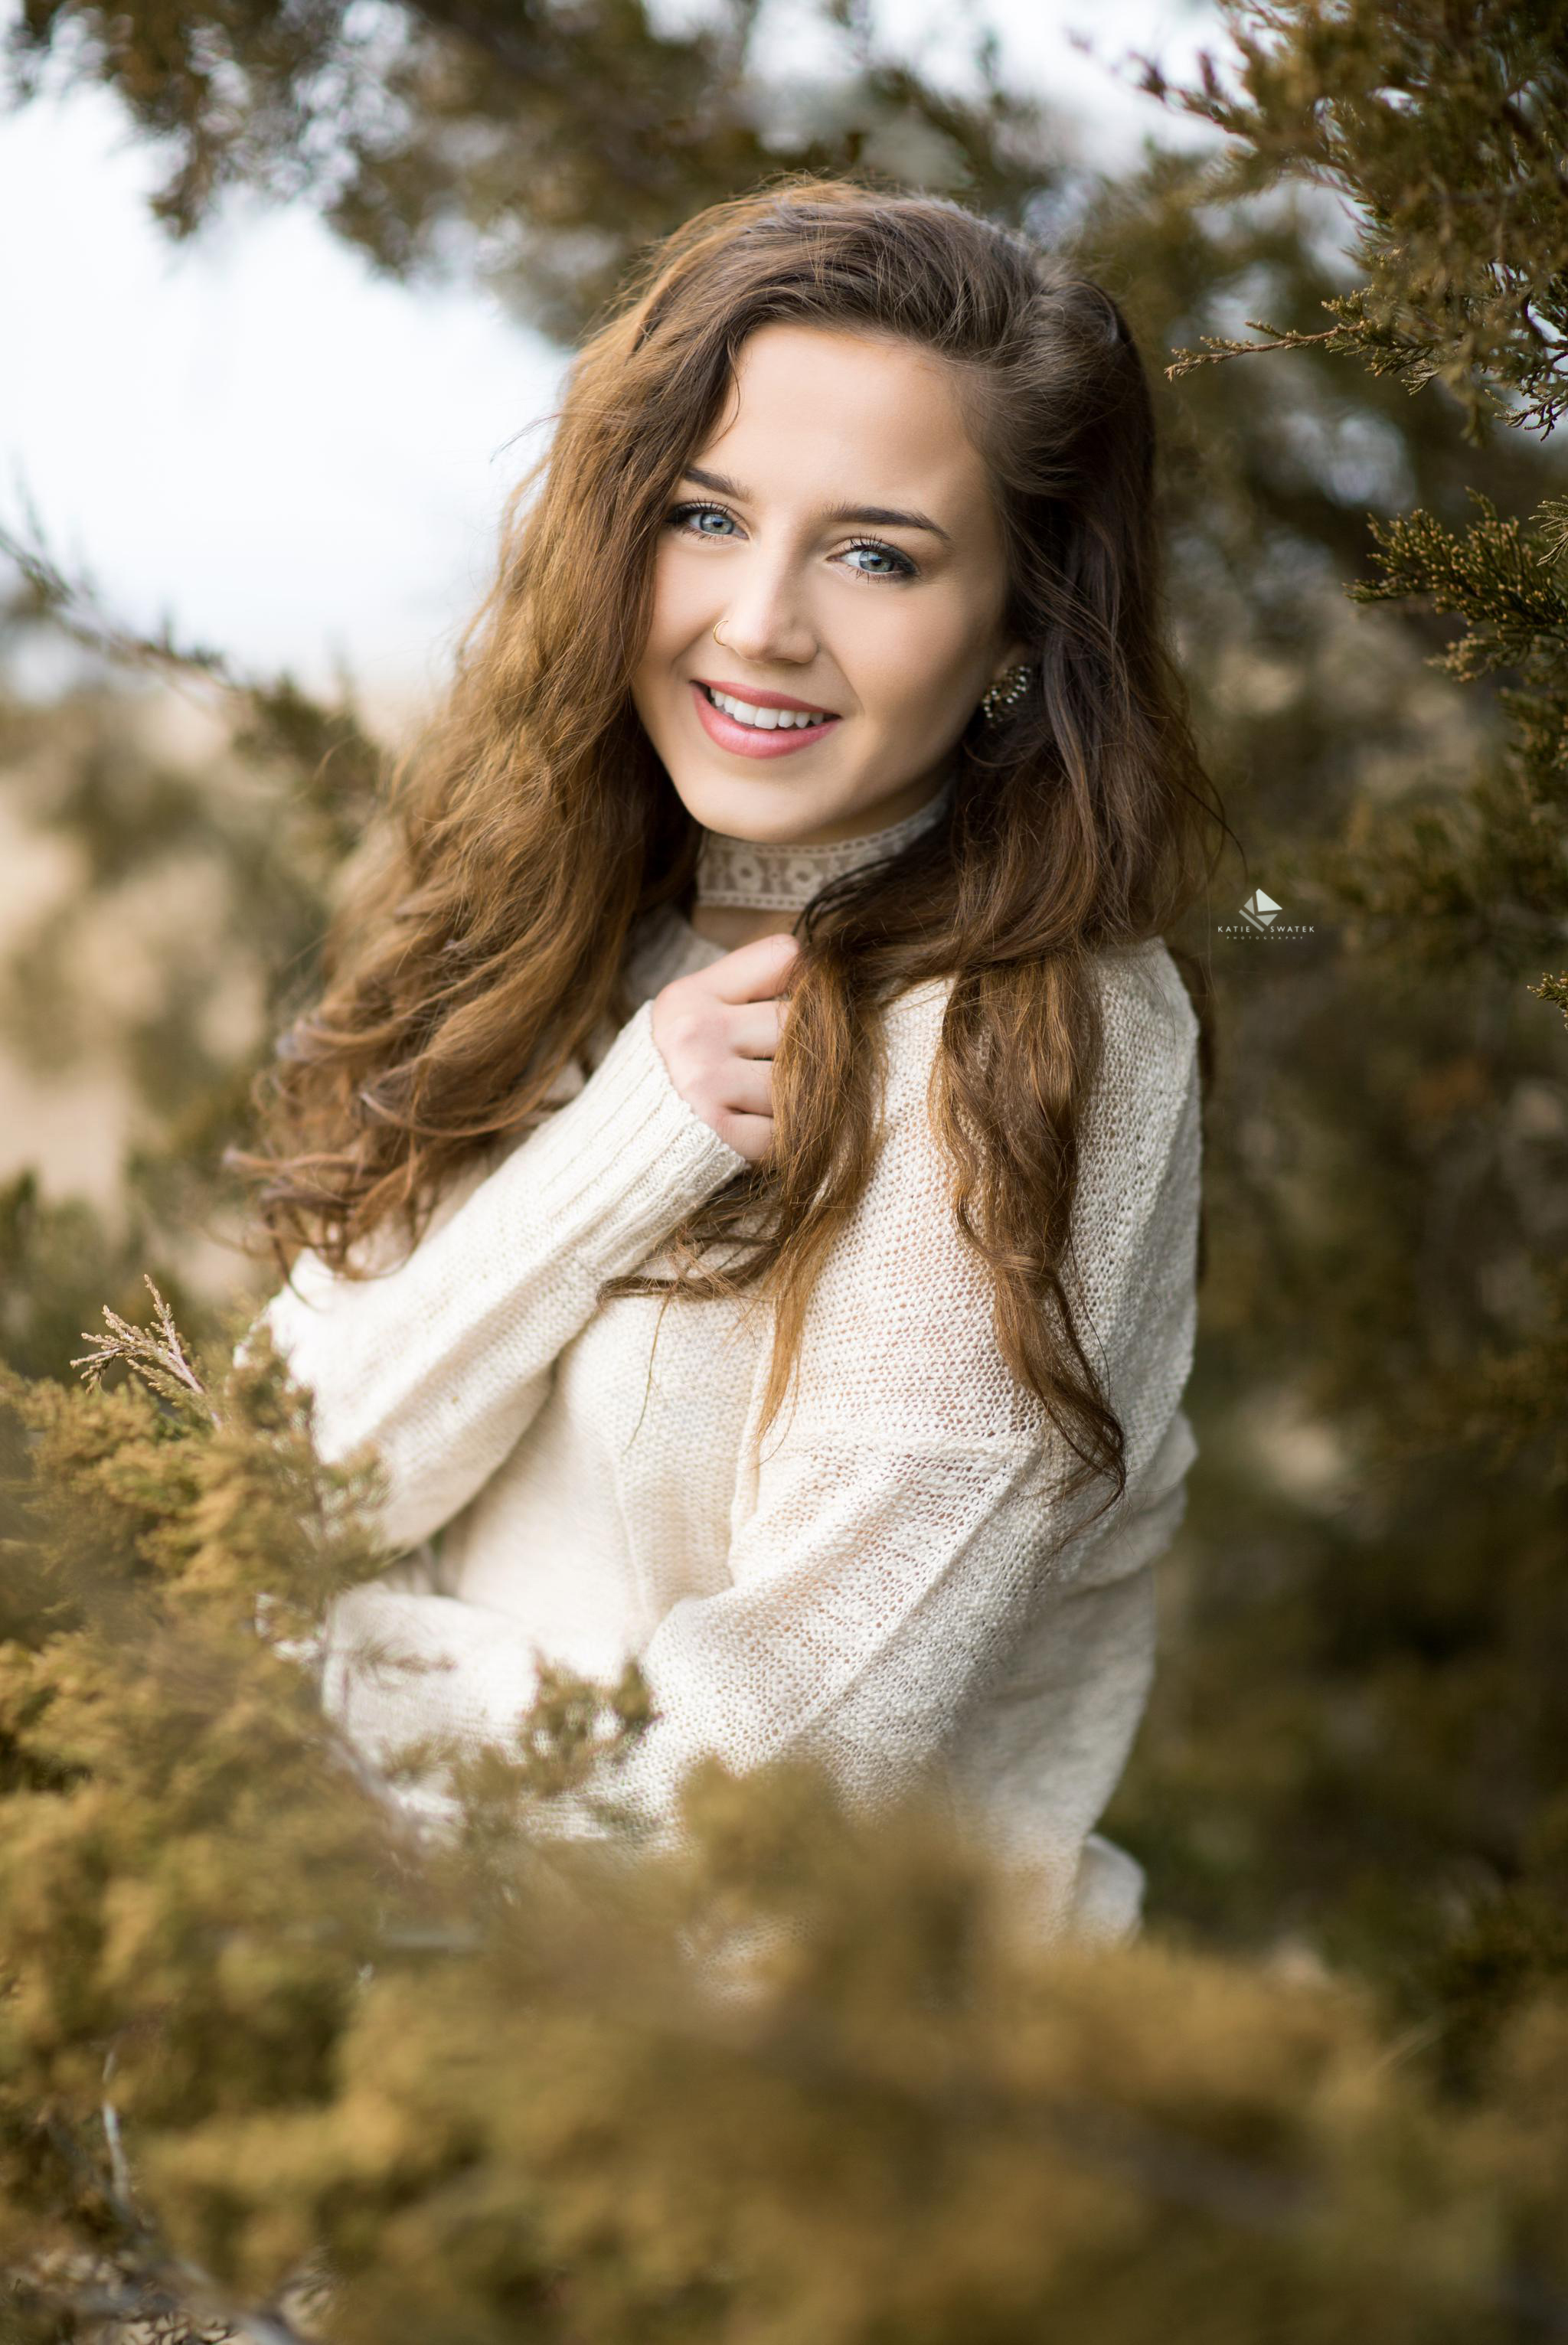 brunette senior girl in a cream colored sweater standing in an evergreen tree